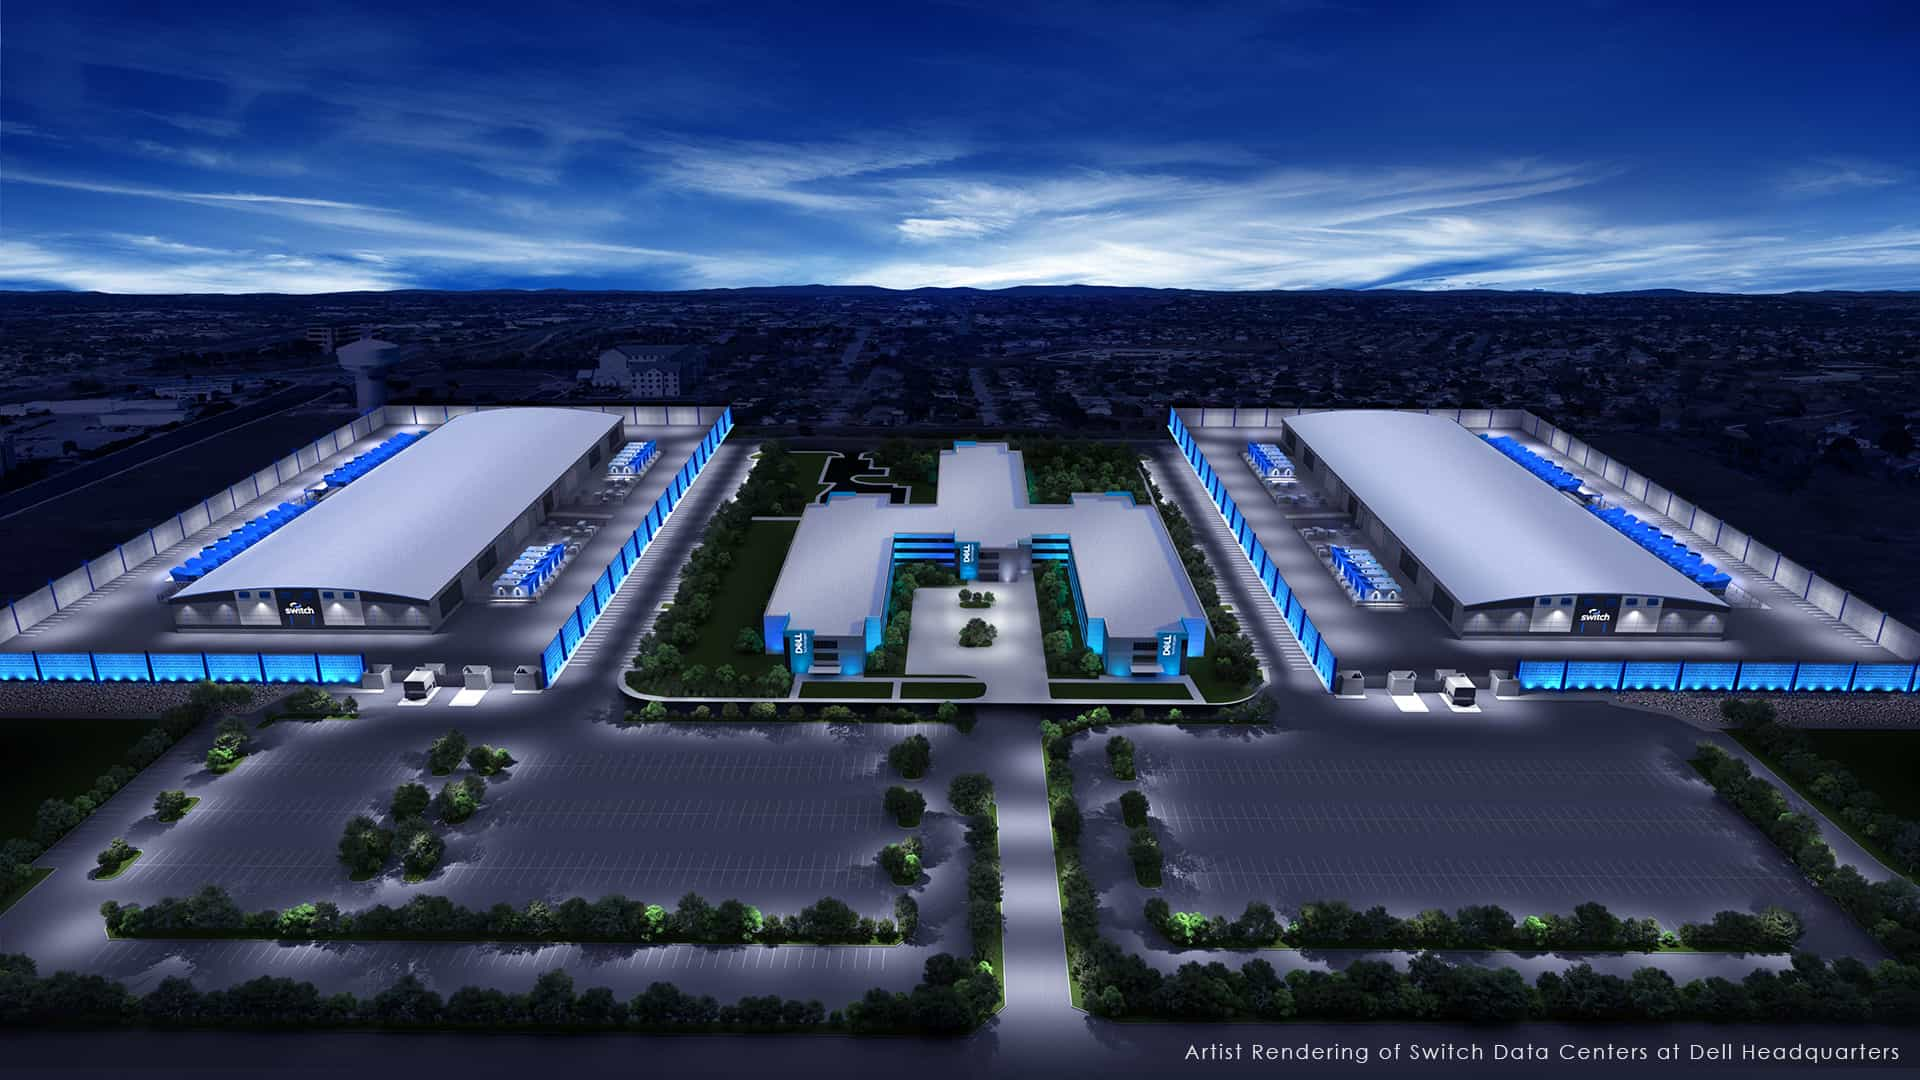 Switch Announces Fifth Prime Expansion with Development of Exascale Data Center Campus in Texas